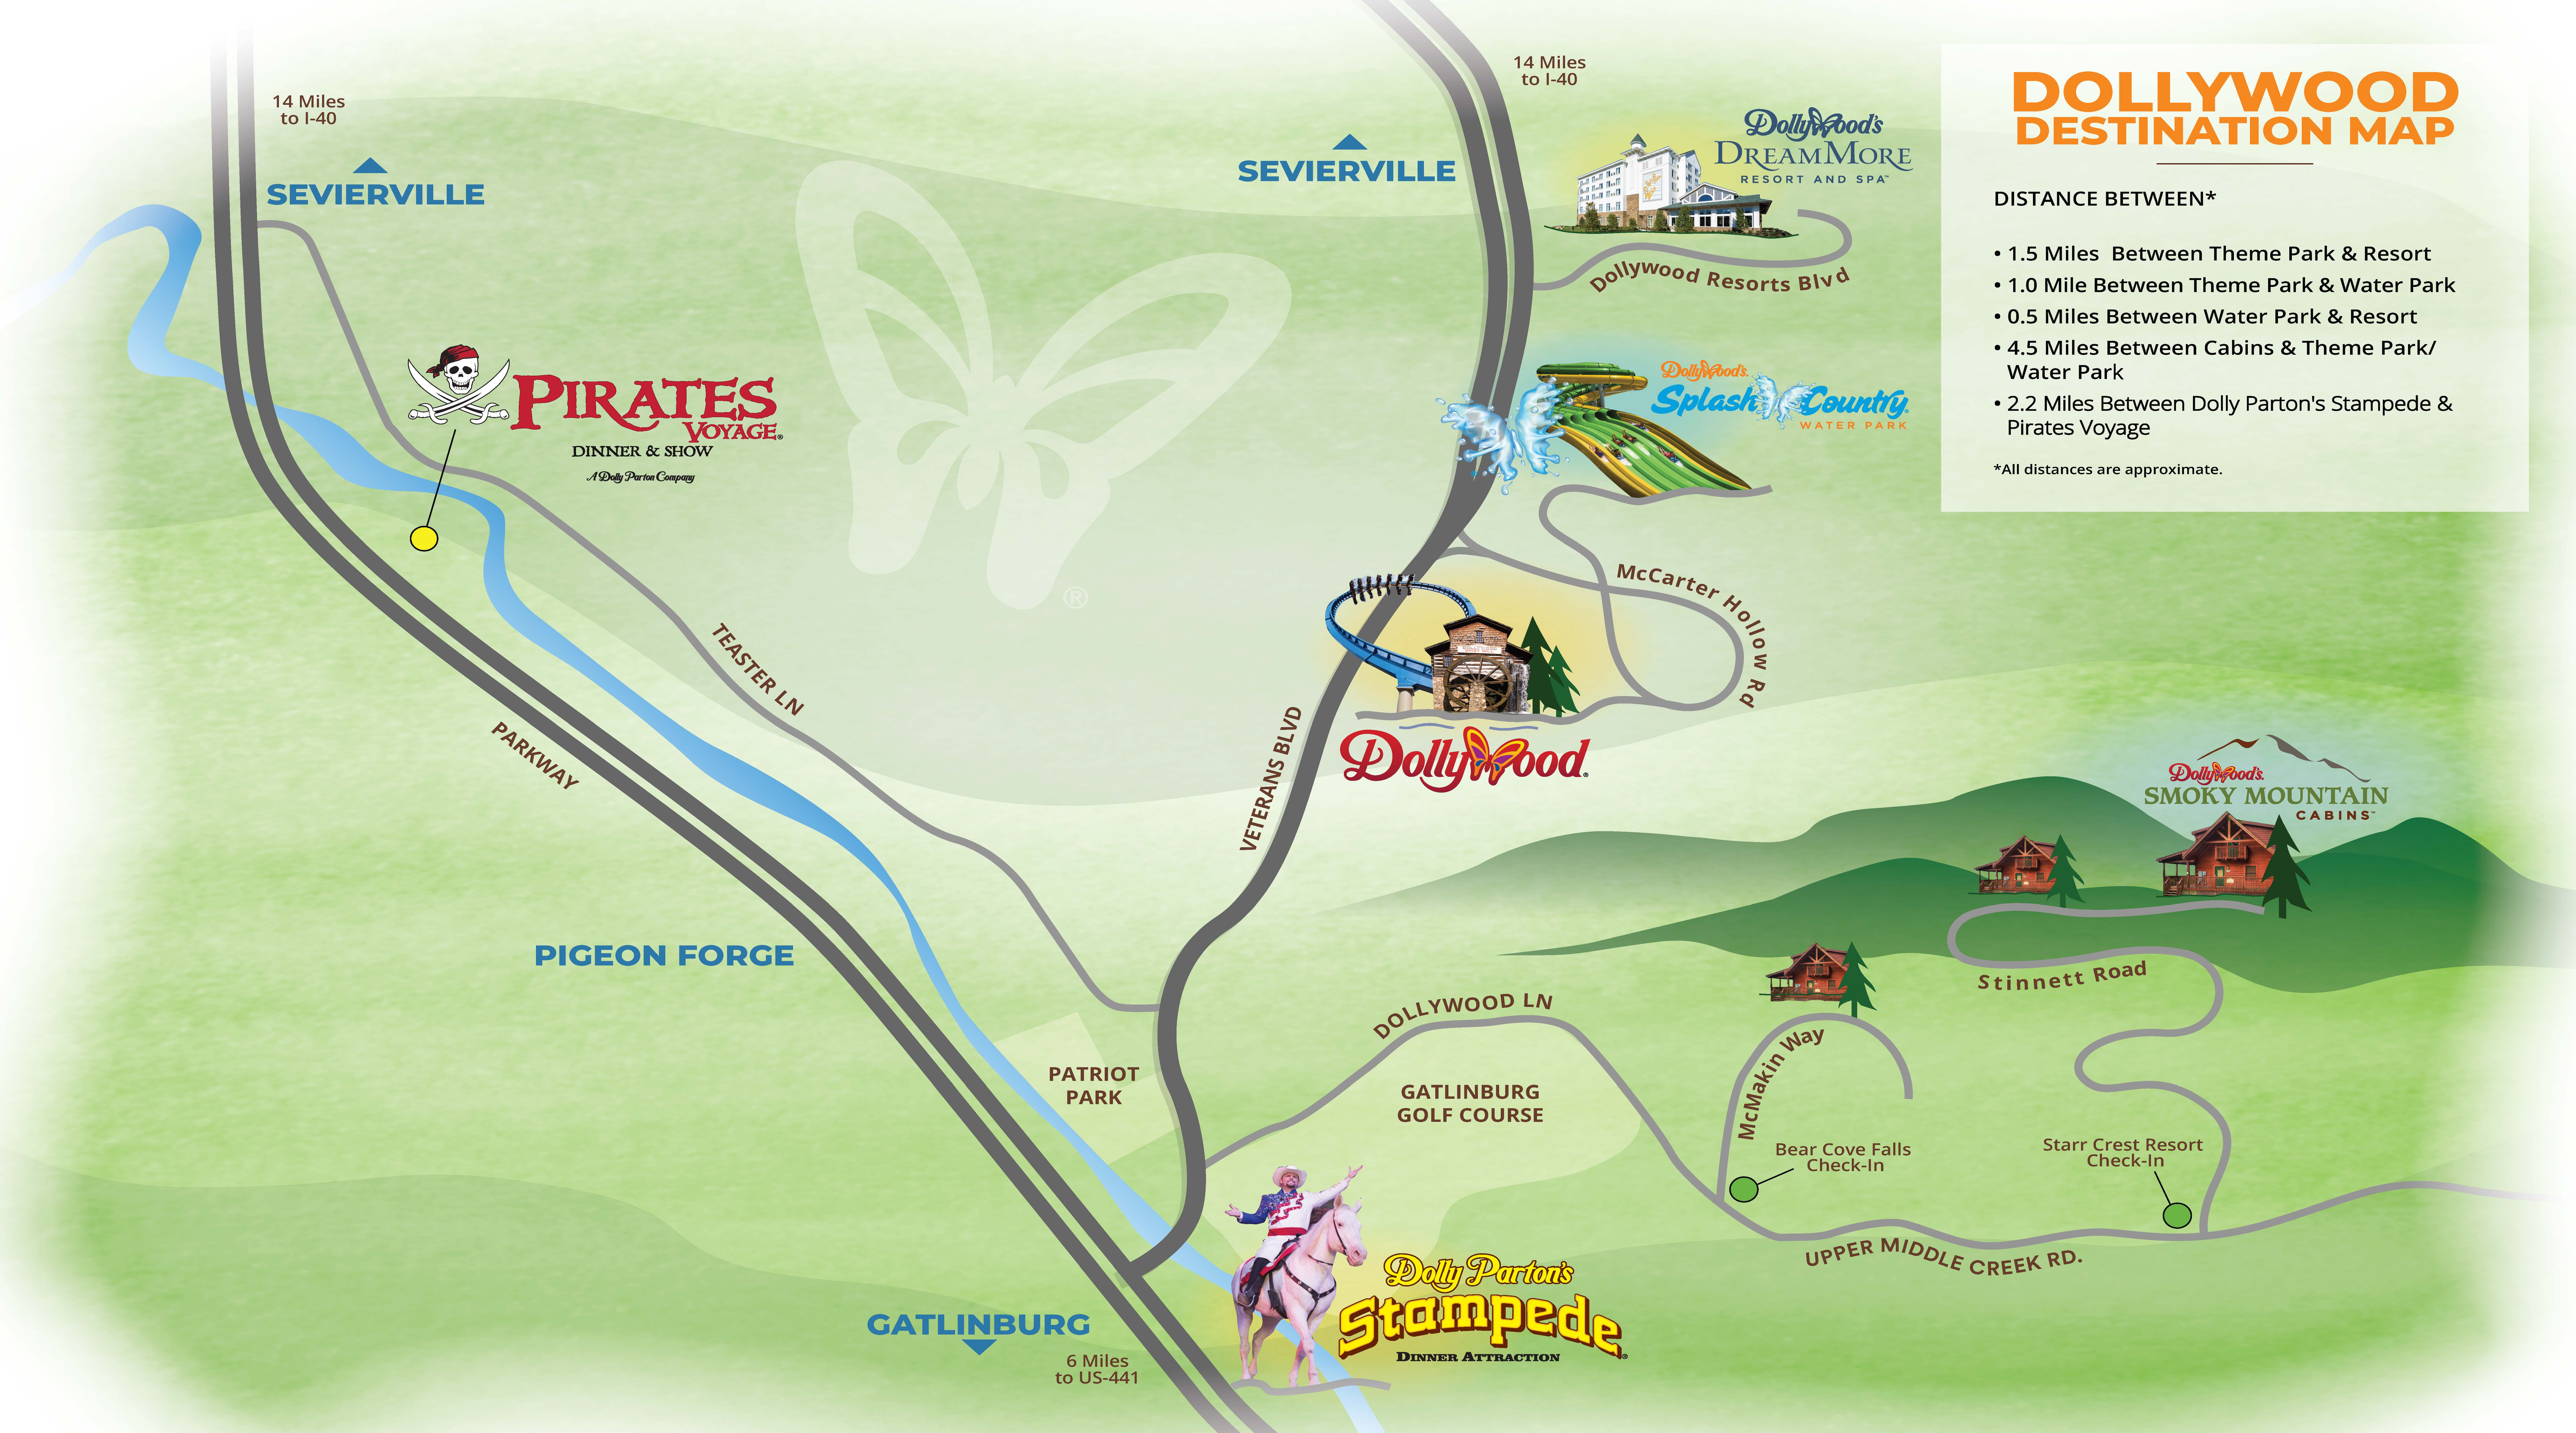 Dollywood Map From Dollywood 7